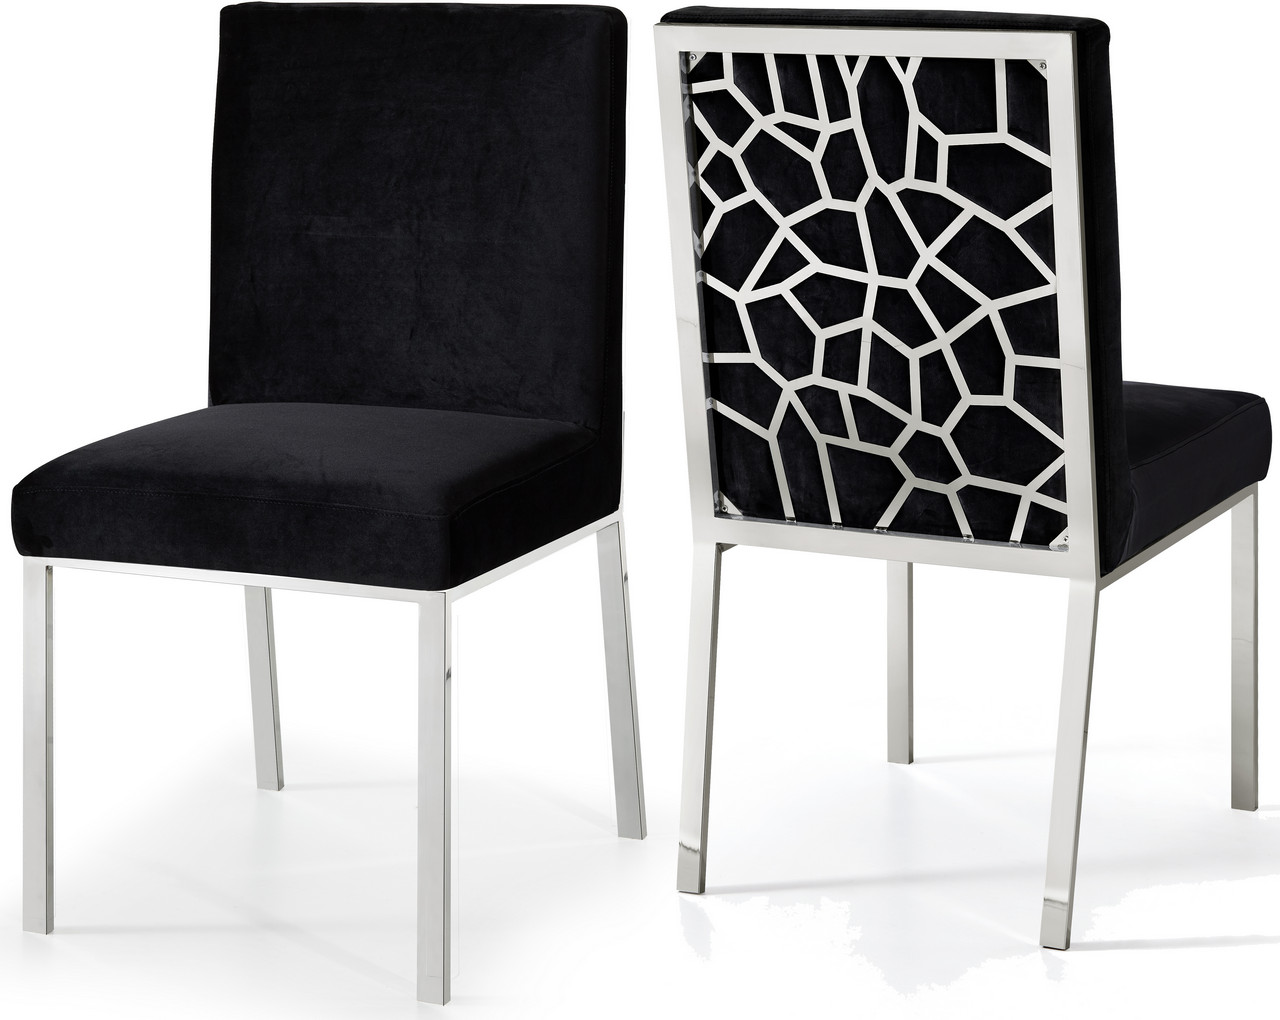 Awe Inspiring Details About Set Of 2 Zariya Modern Black Velvet Dining Chair Geometric Back Chrome Finish Caraccident5 Cool Chair Designs And Ideas Caraccident5Info